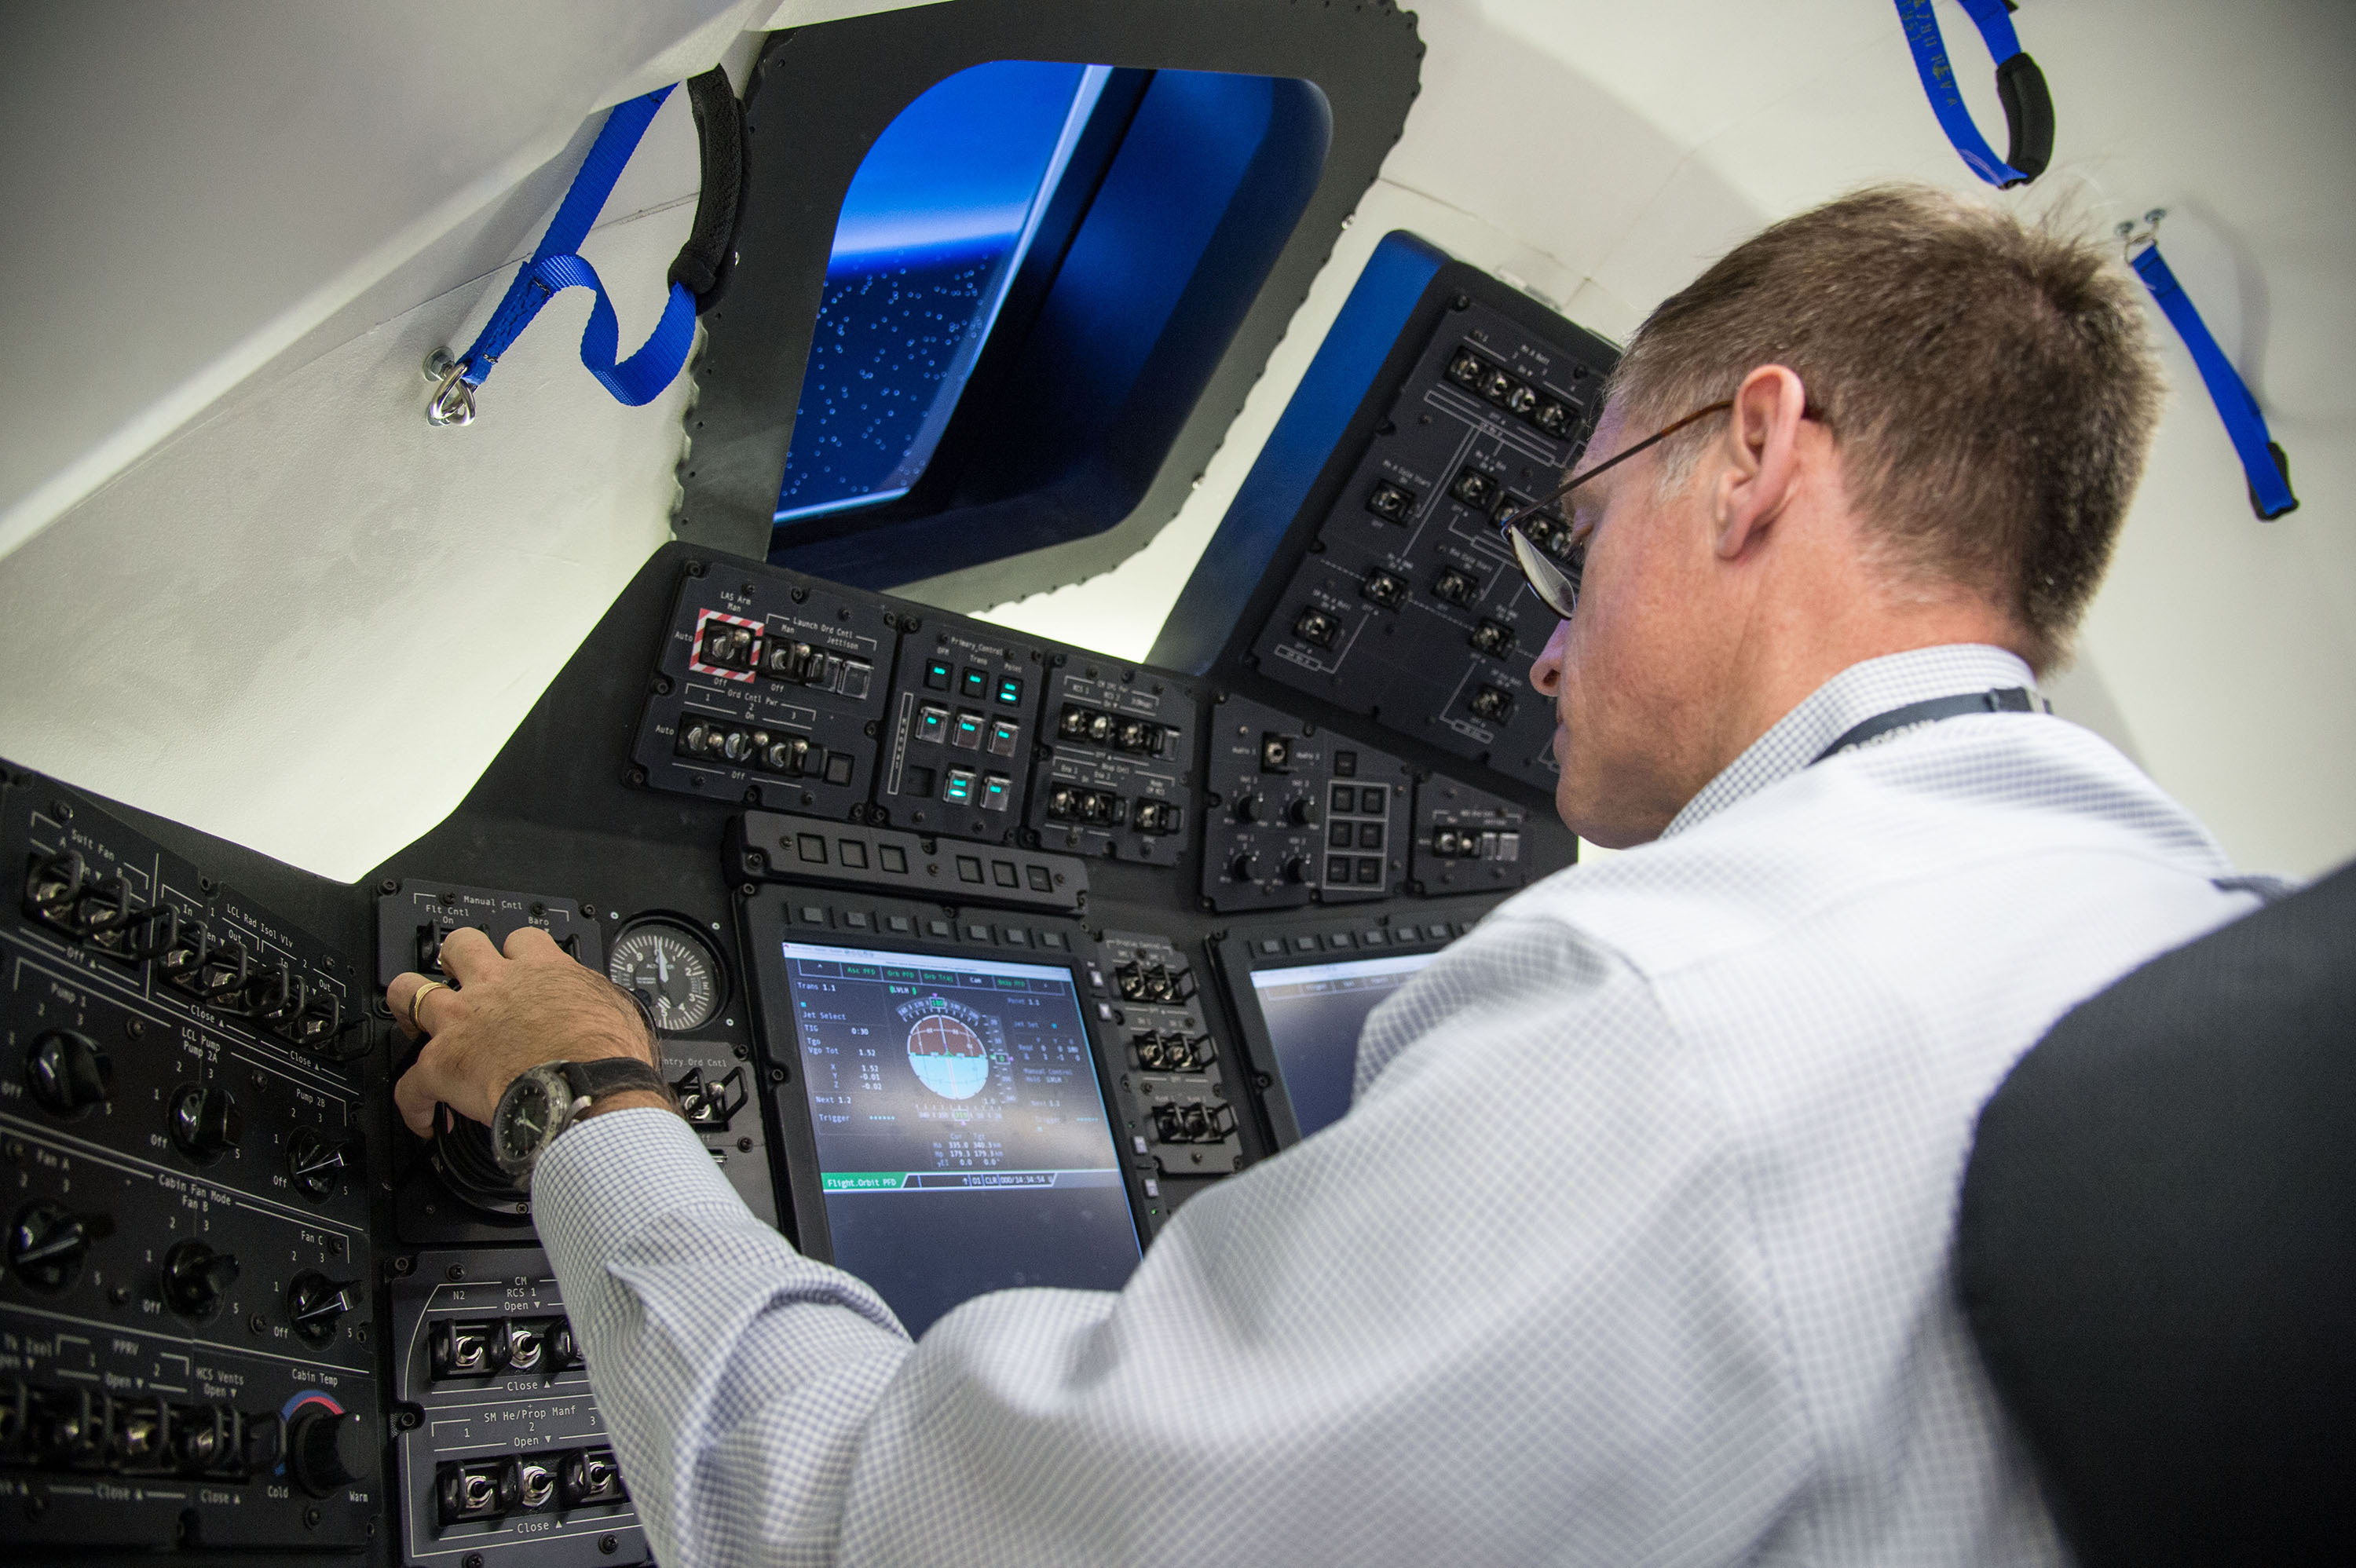 boeing spacecraft cockpits-#main